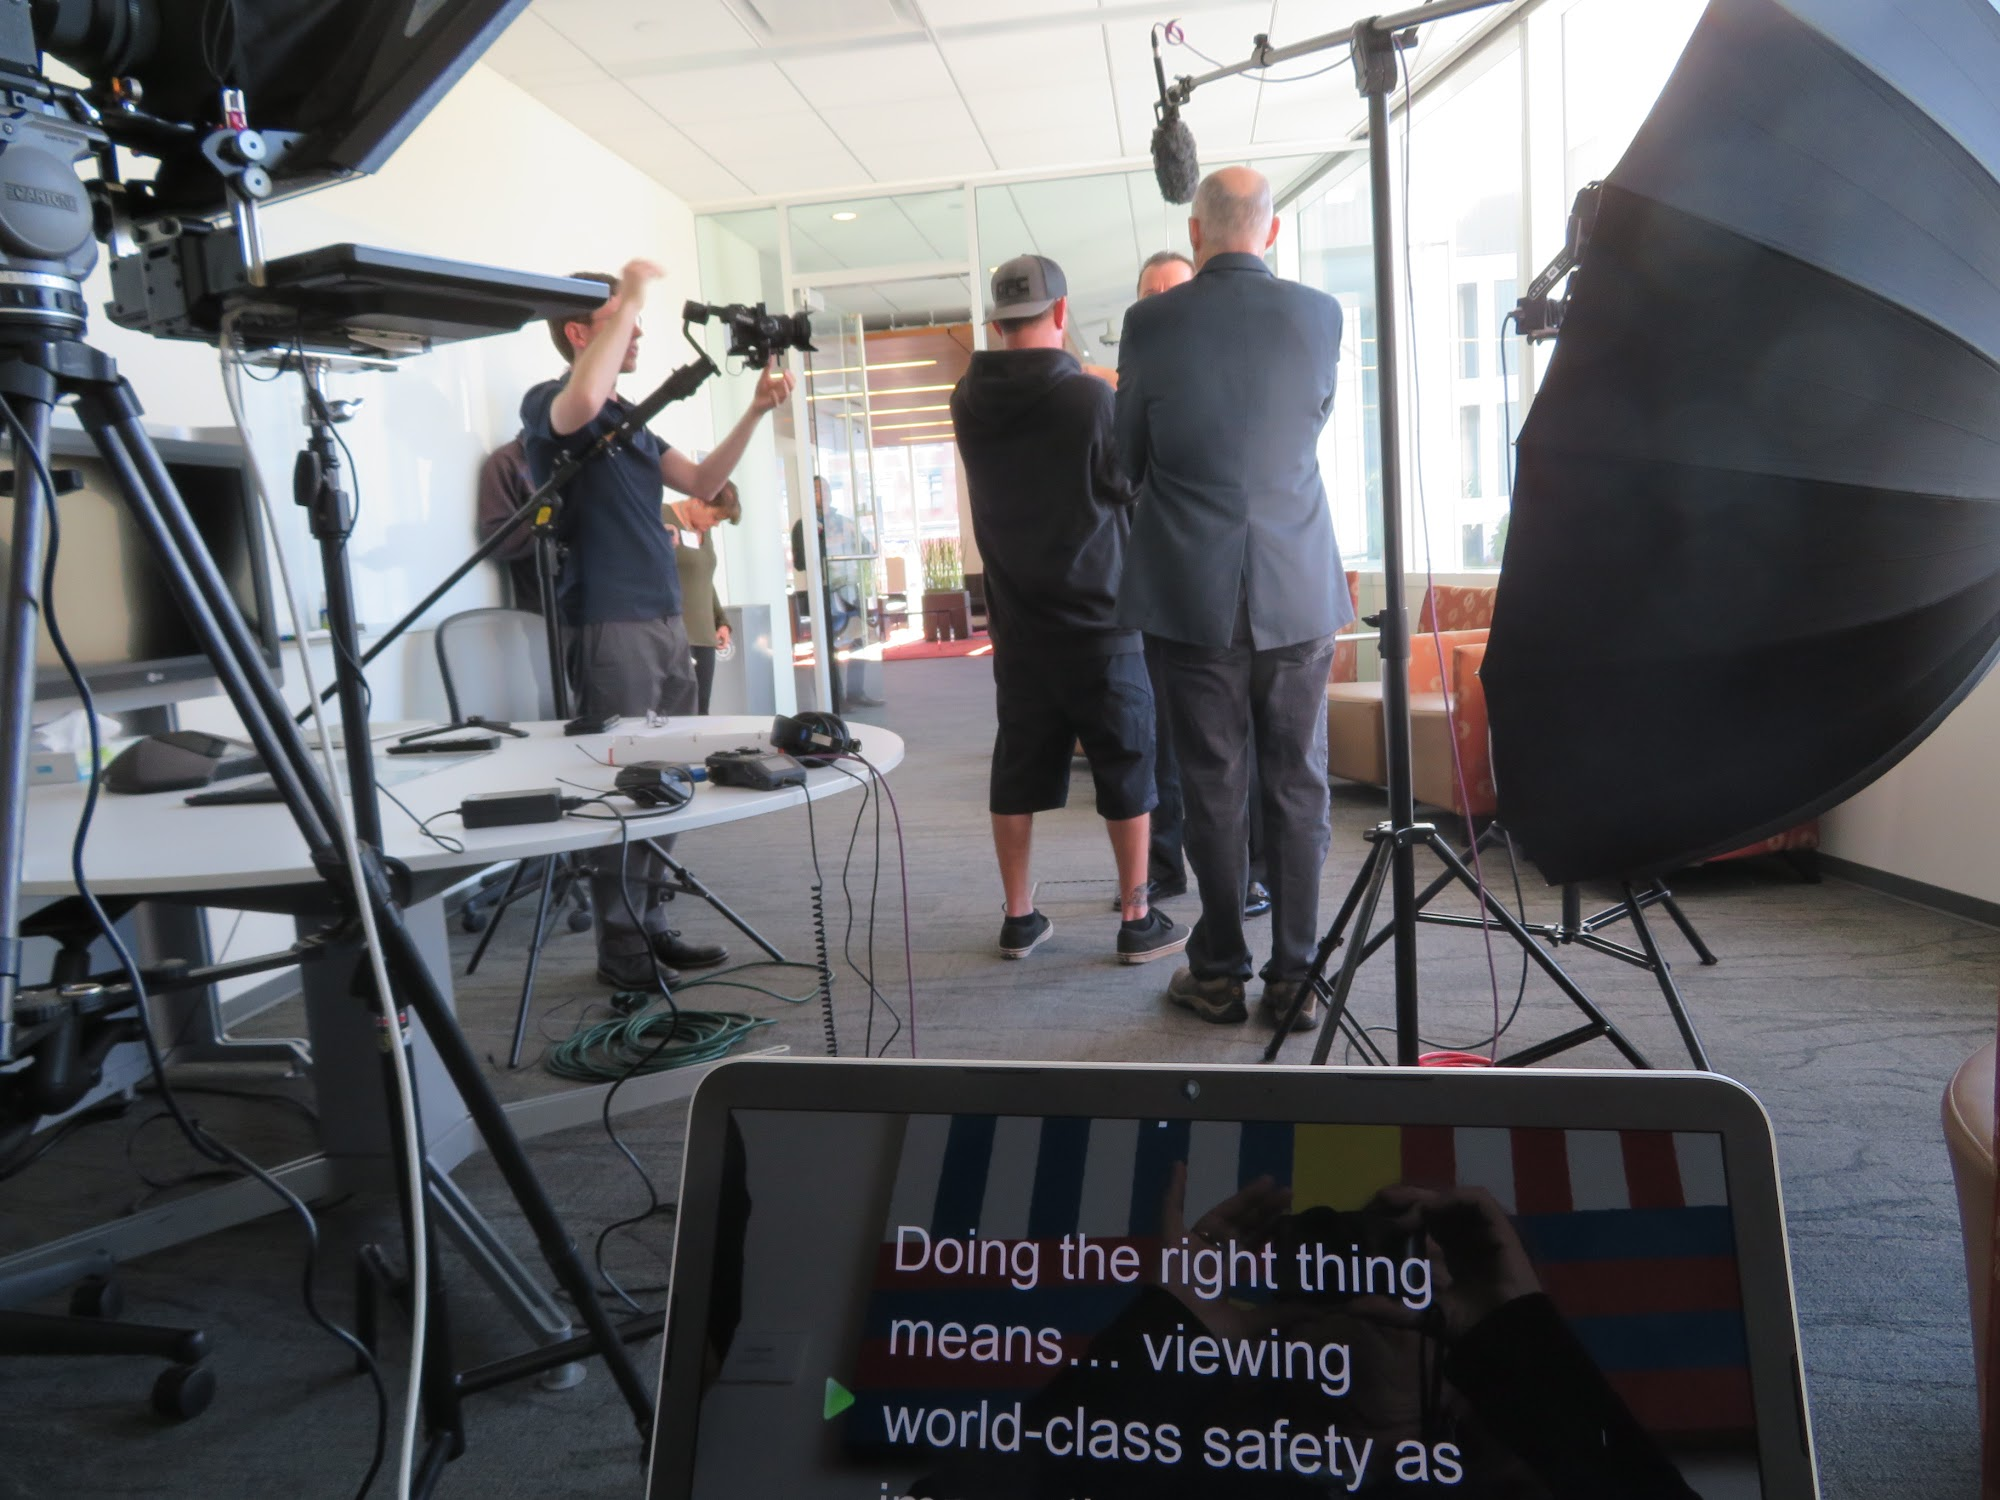 Prompter People Inc